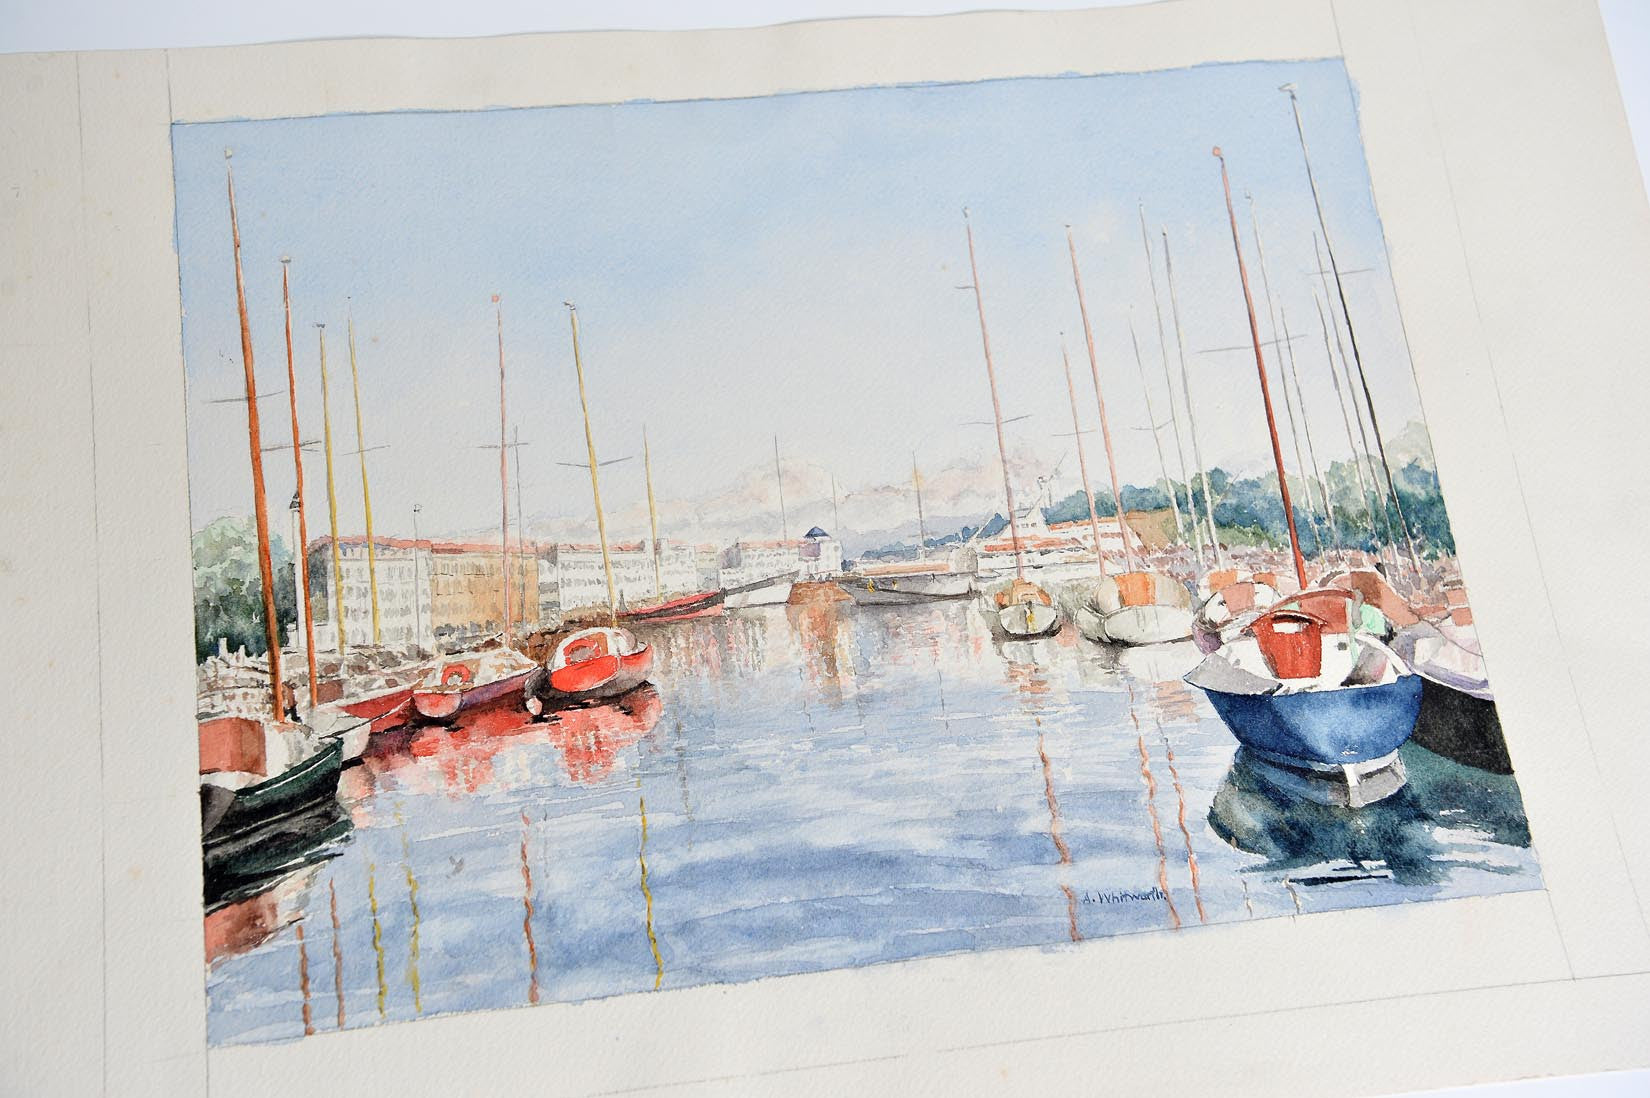 L Atelier La Rochelle marina watercoloura. whitworth - natalia willmott